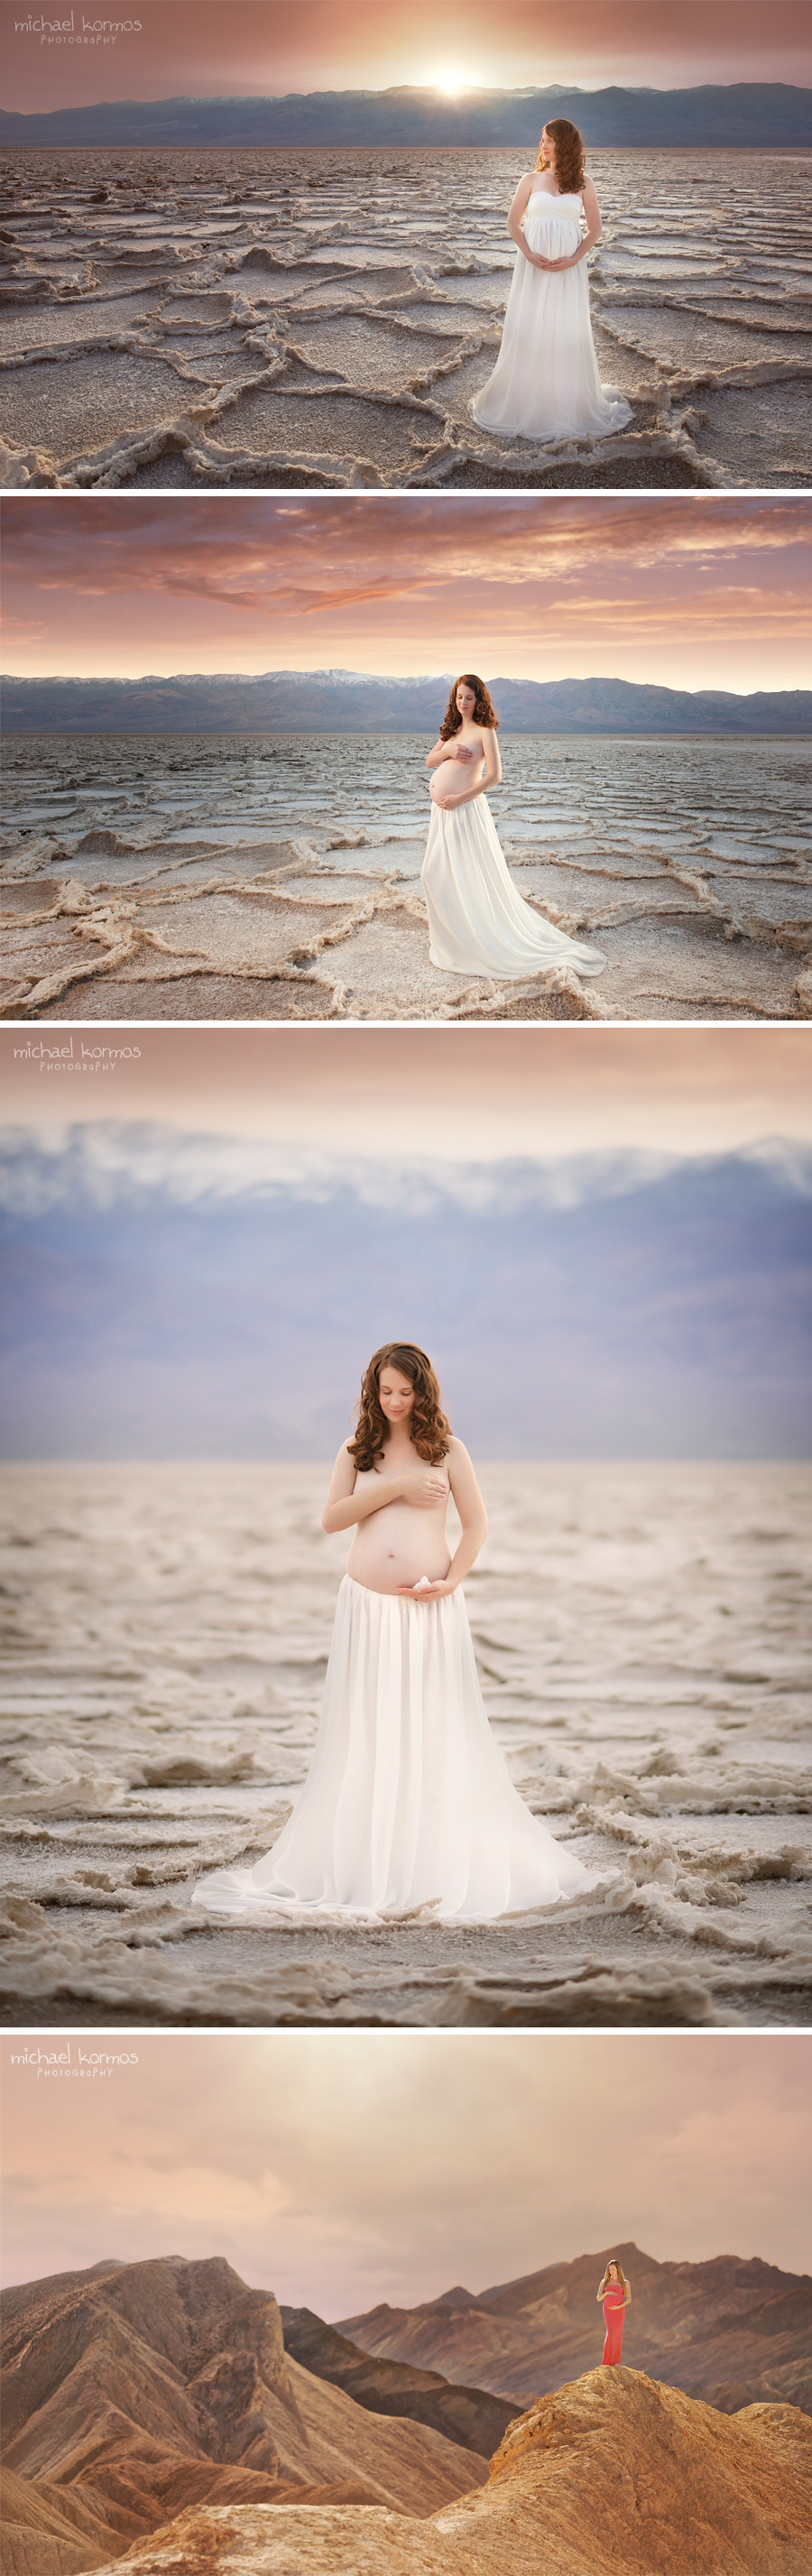 NYC Maternity Photographer Michael Kormos captures timeless portraits in studio and on location in Death Valley